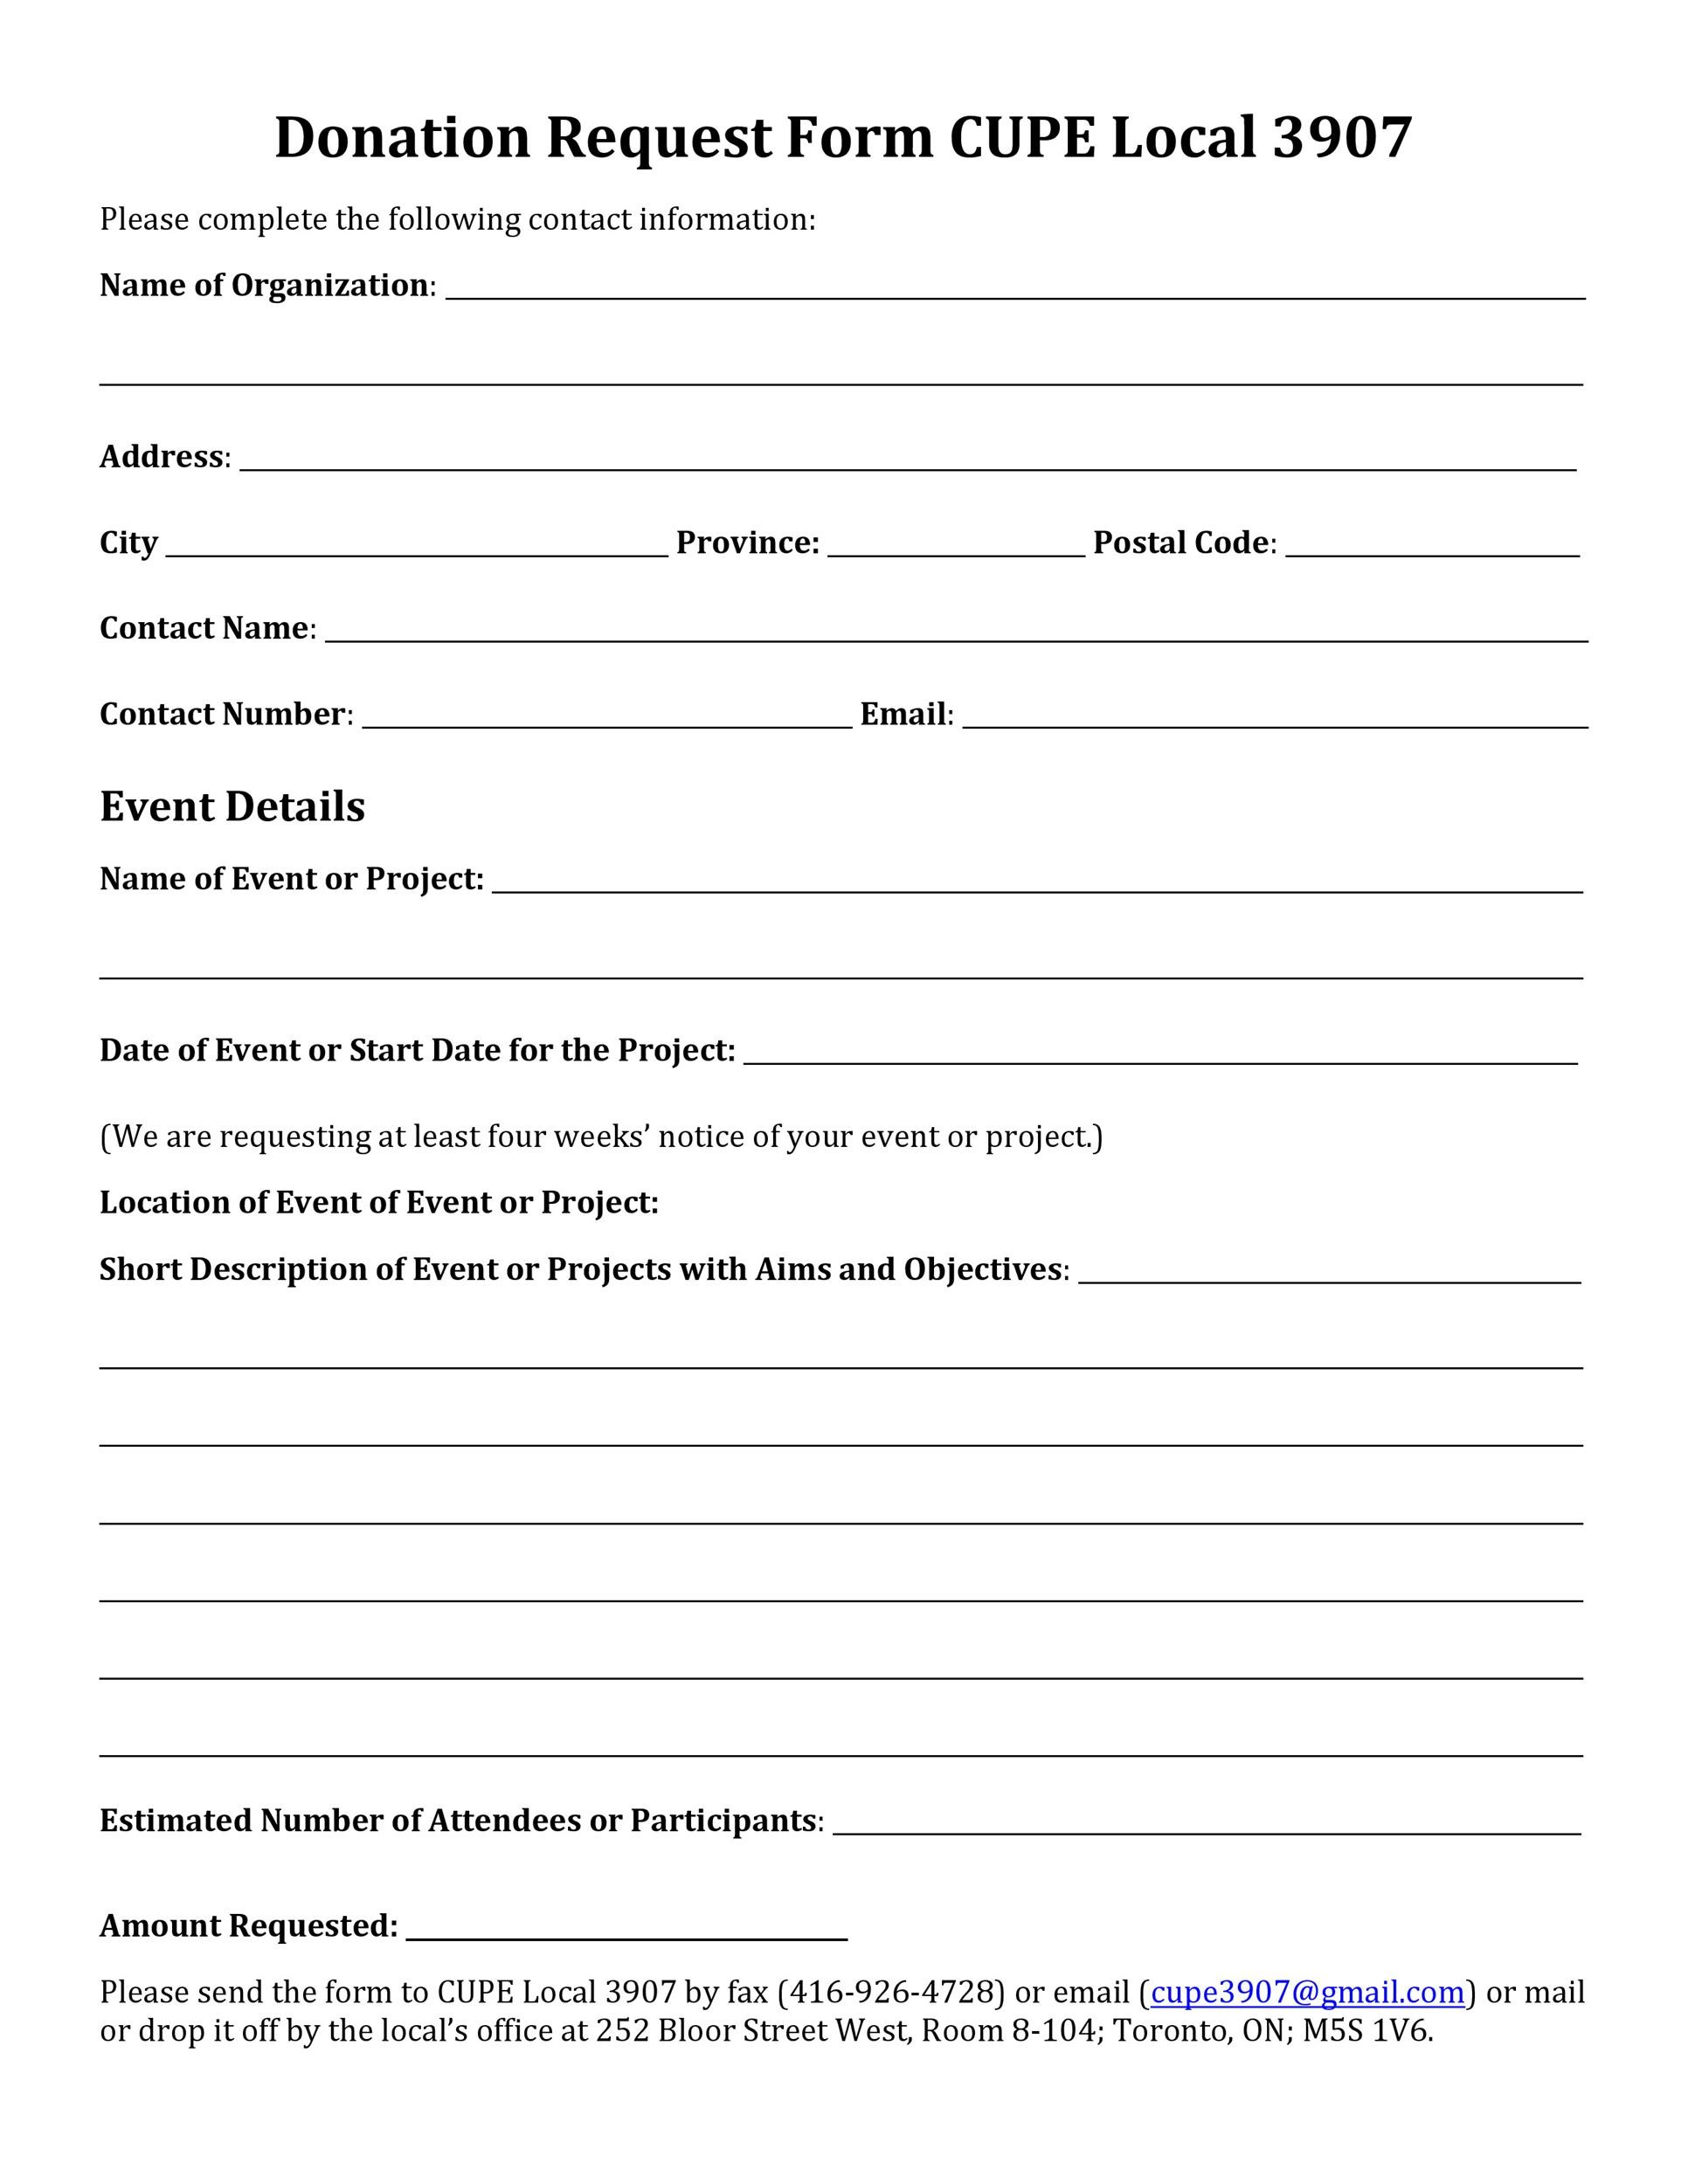 Printable Donation Request Form 03